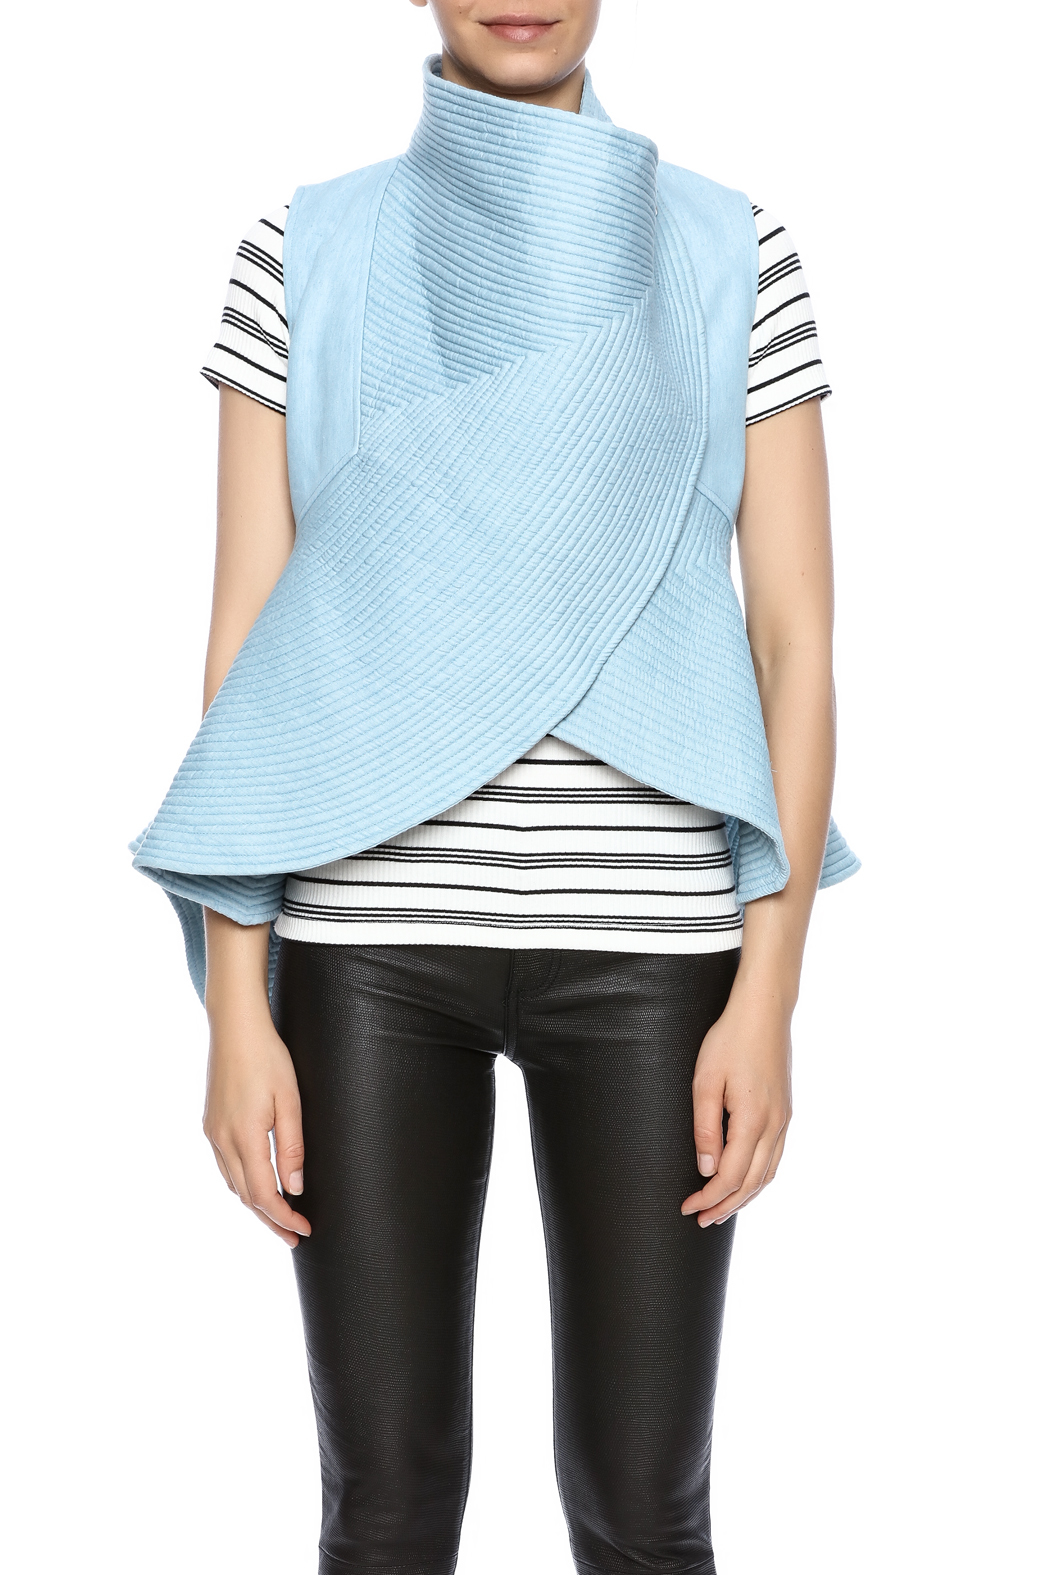 cq by cq Quilted Flare Vest - Side Cropped Image